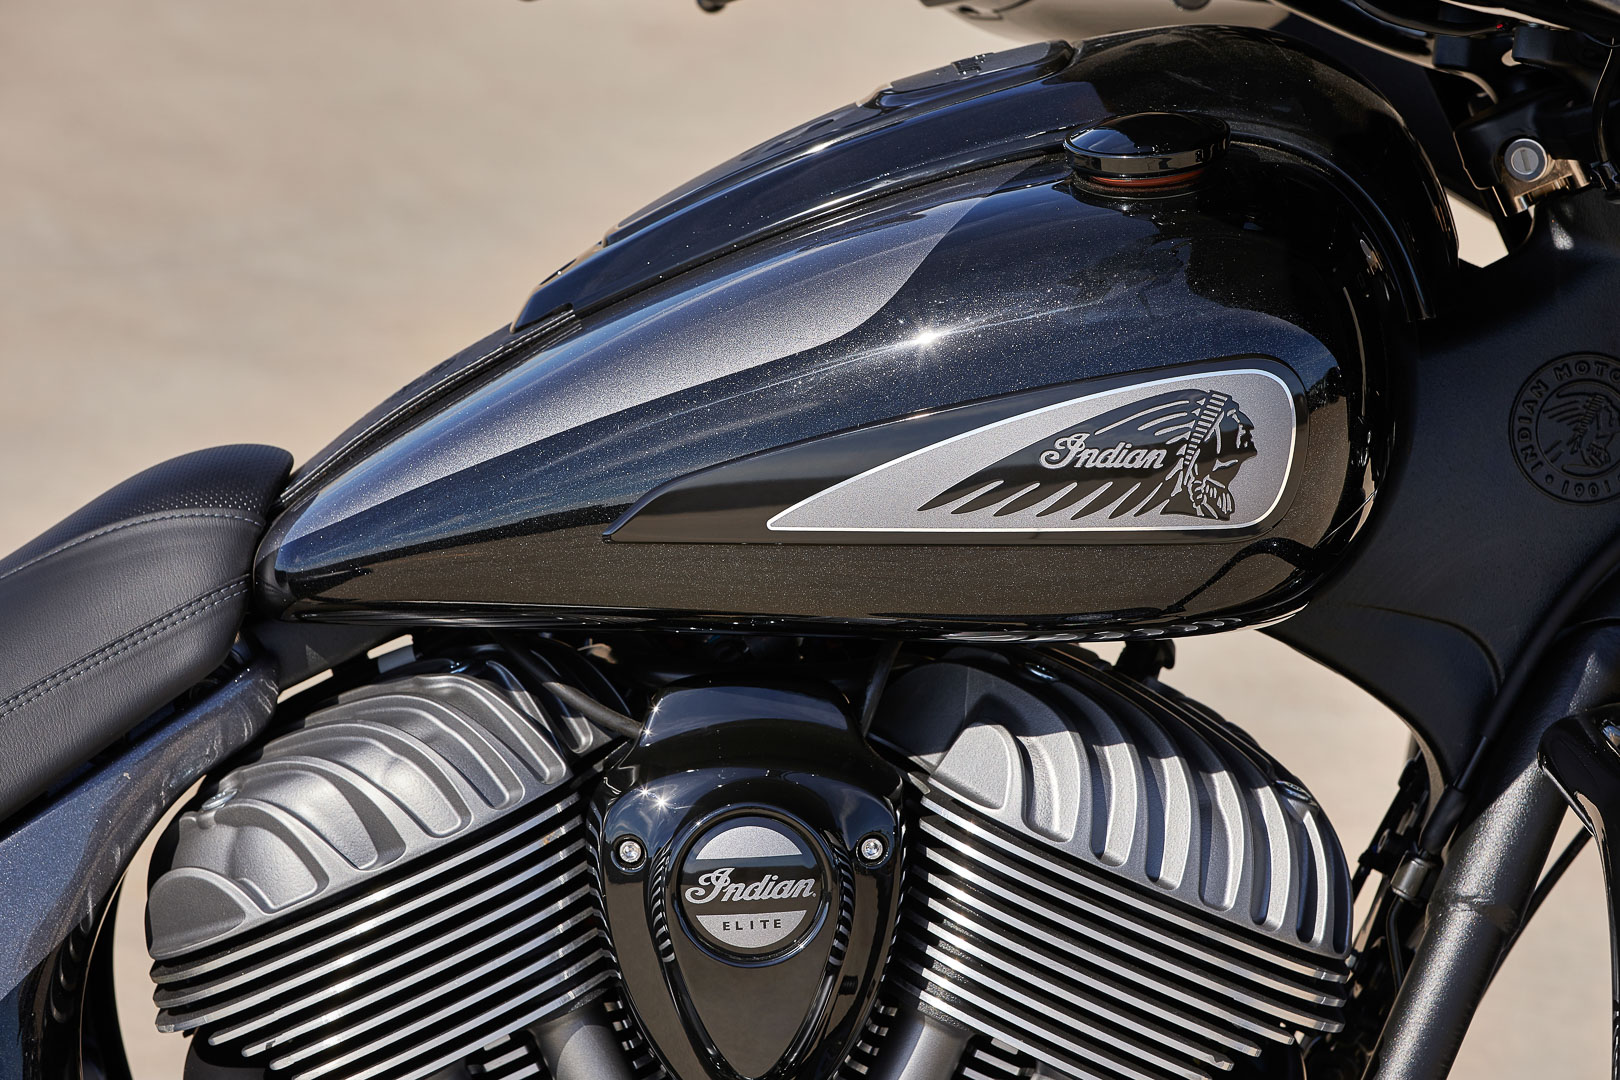 2021 Indian Chieftain Elite First Look: Colors and Paint